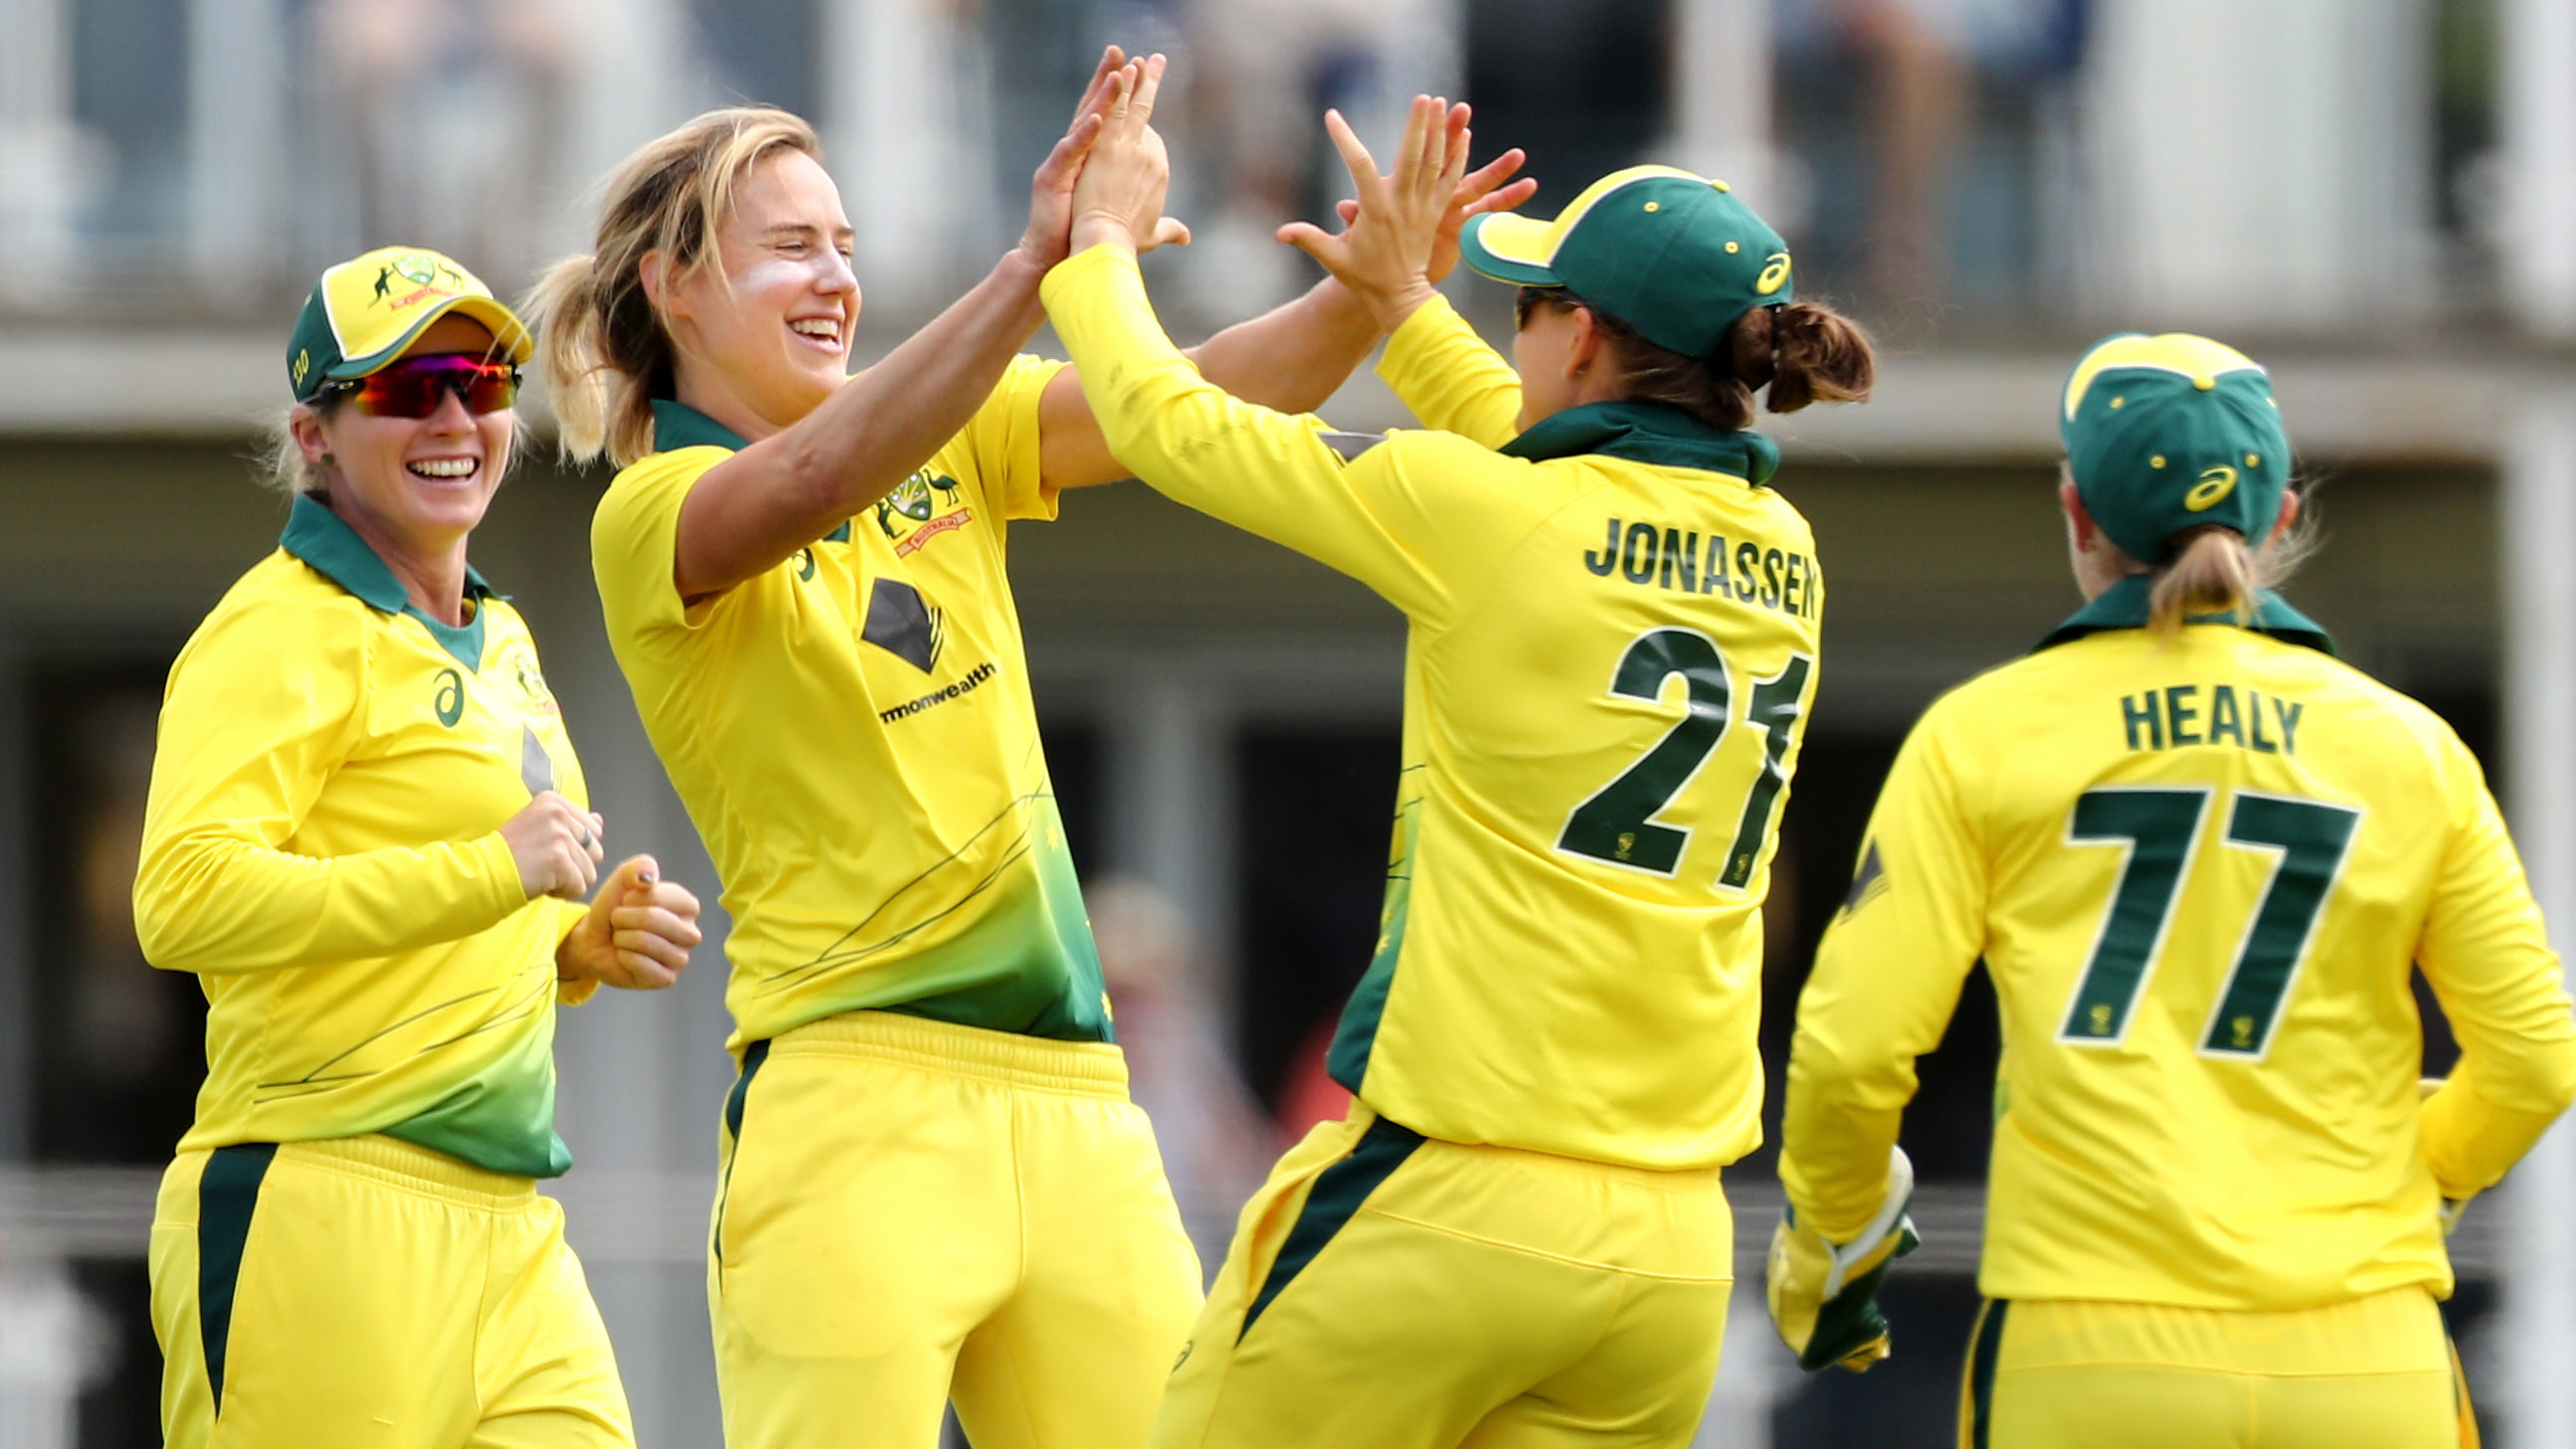 Ellyse Perry shines at ICC Awards 2019